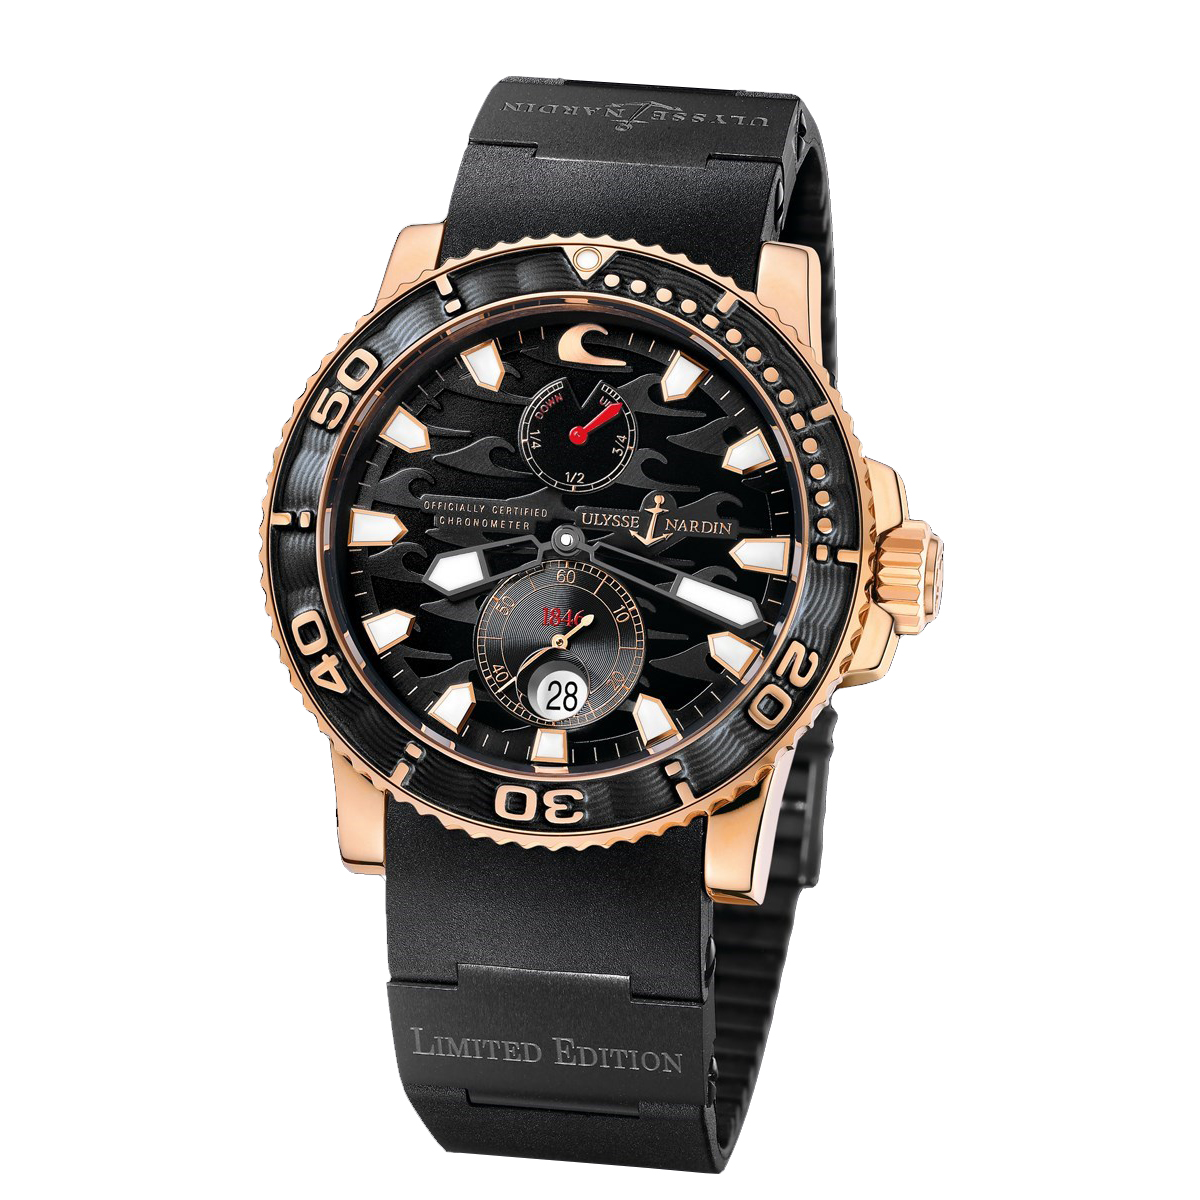 Marine Black Surf Chronometer 42.7mm 266-37LE-3A